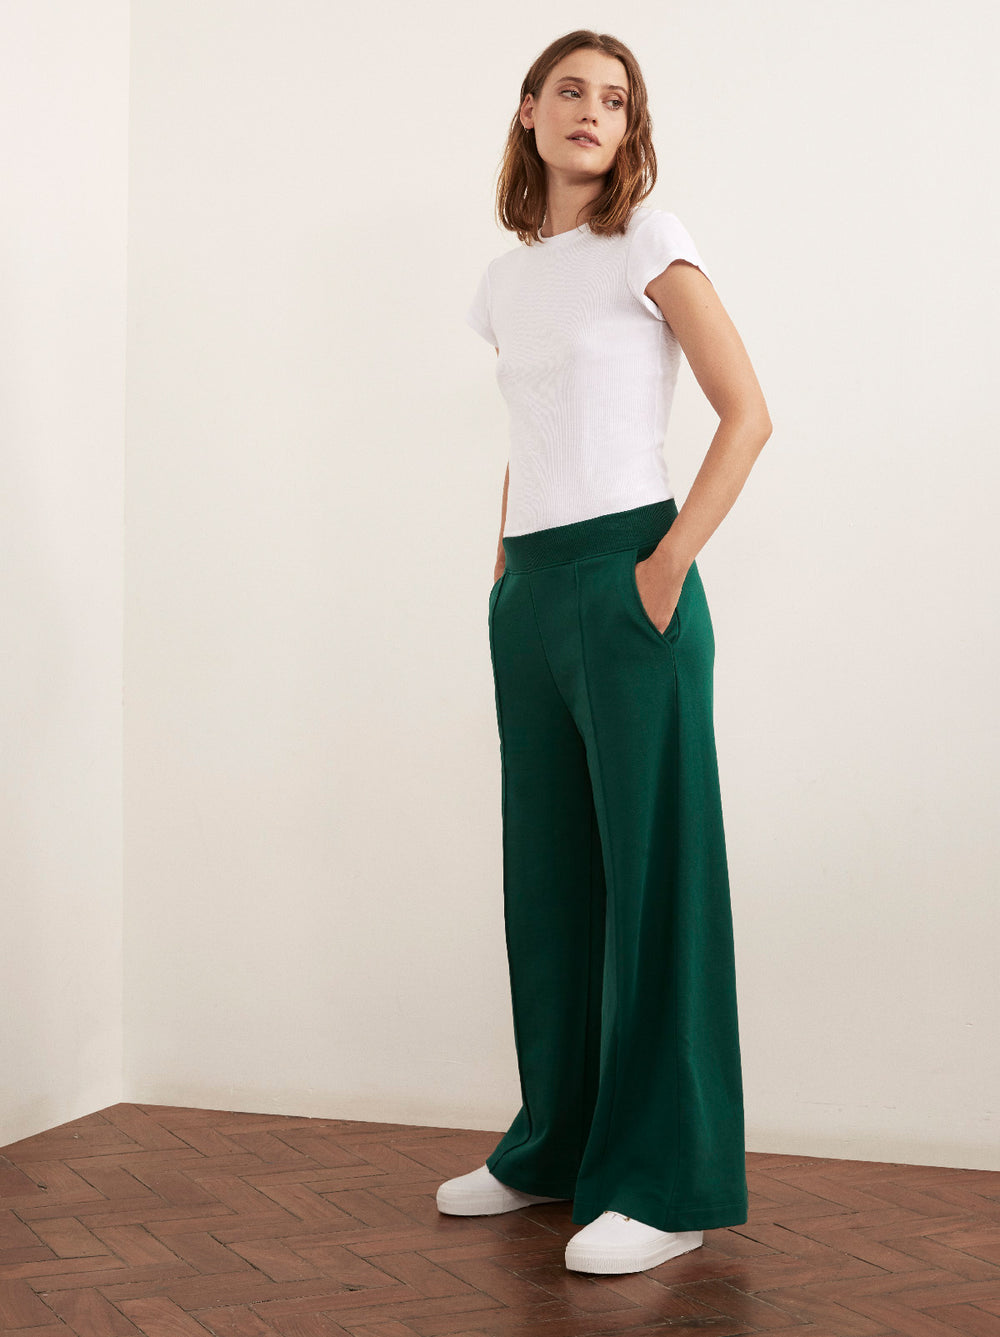 Lee Green Cotton Wide Leg Sweatpants by KITRI Studio